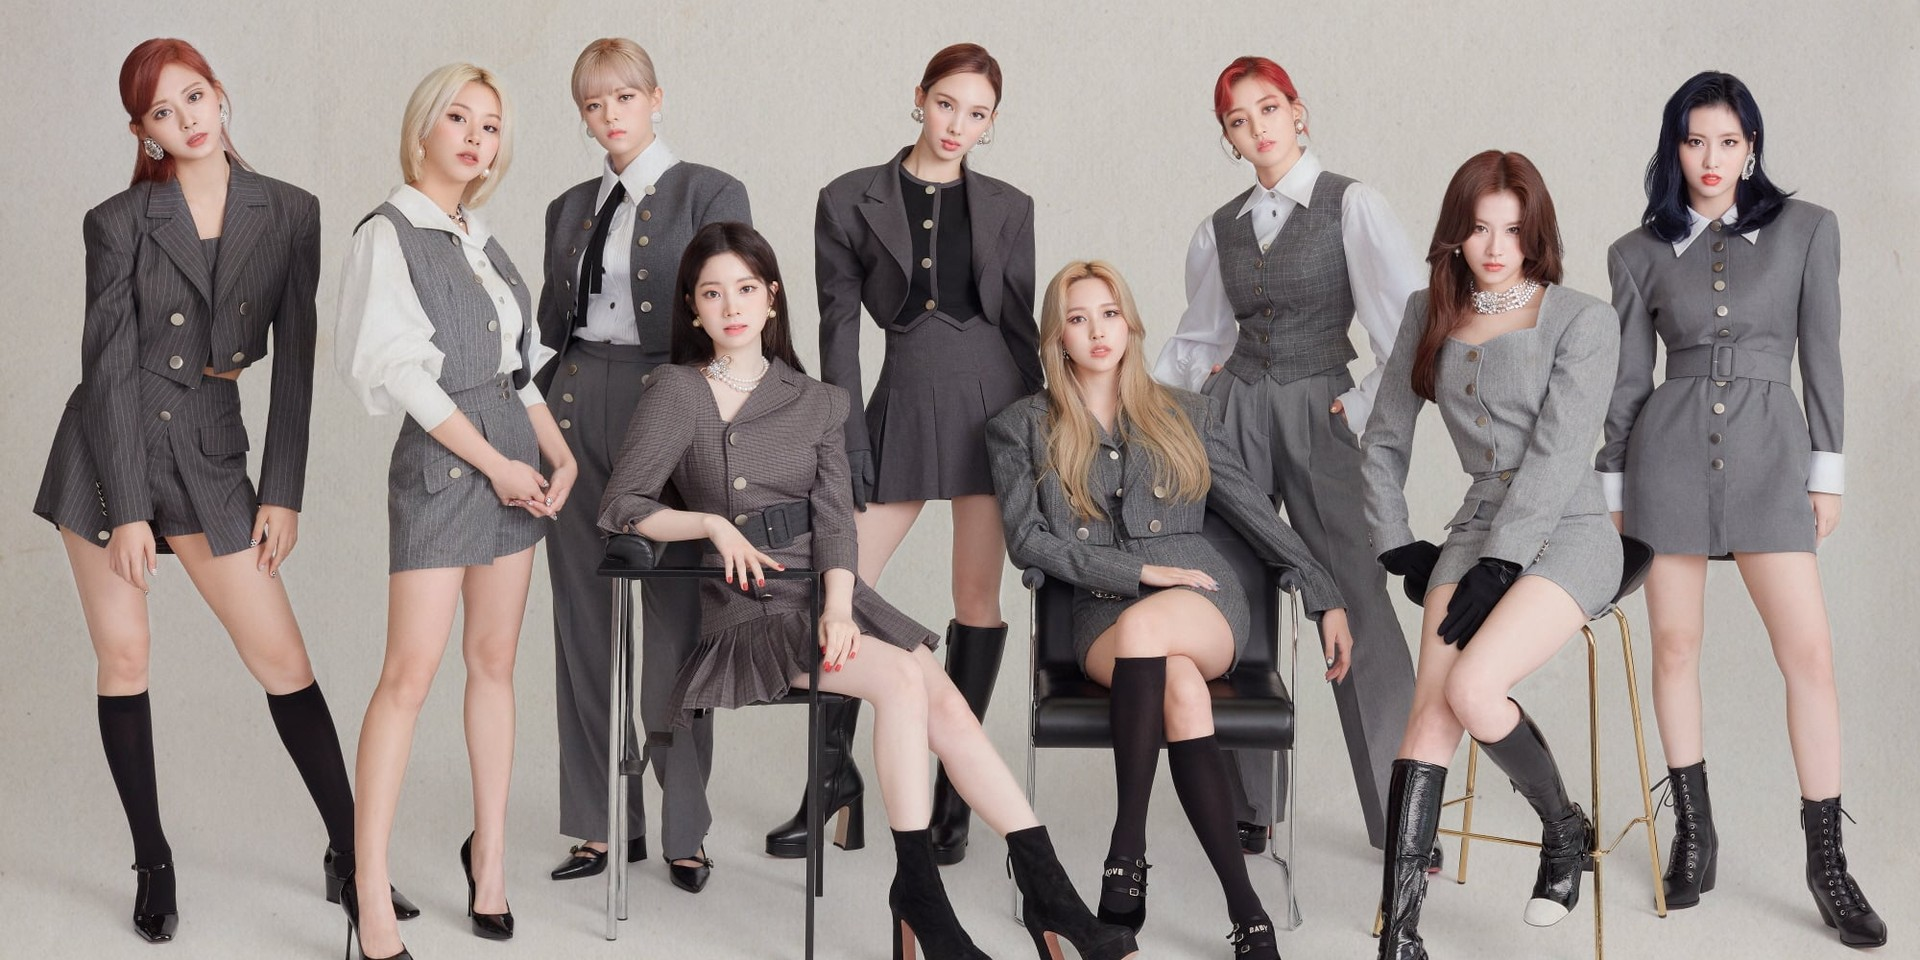 TWICE release new song 'CRY FOR ME', written by J.Y. Park and Heize – listen